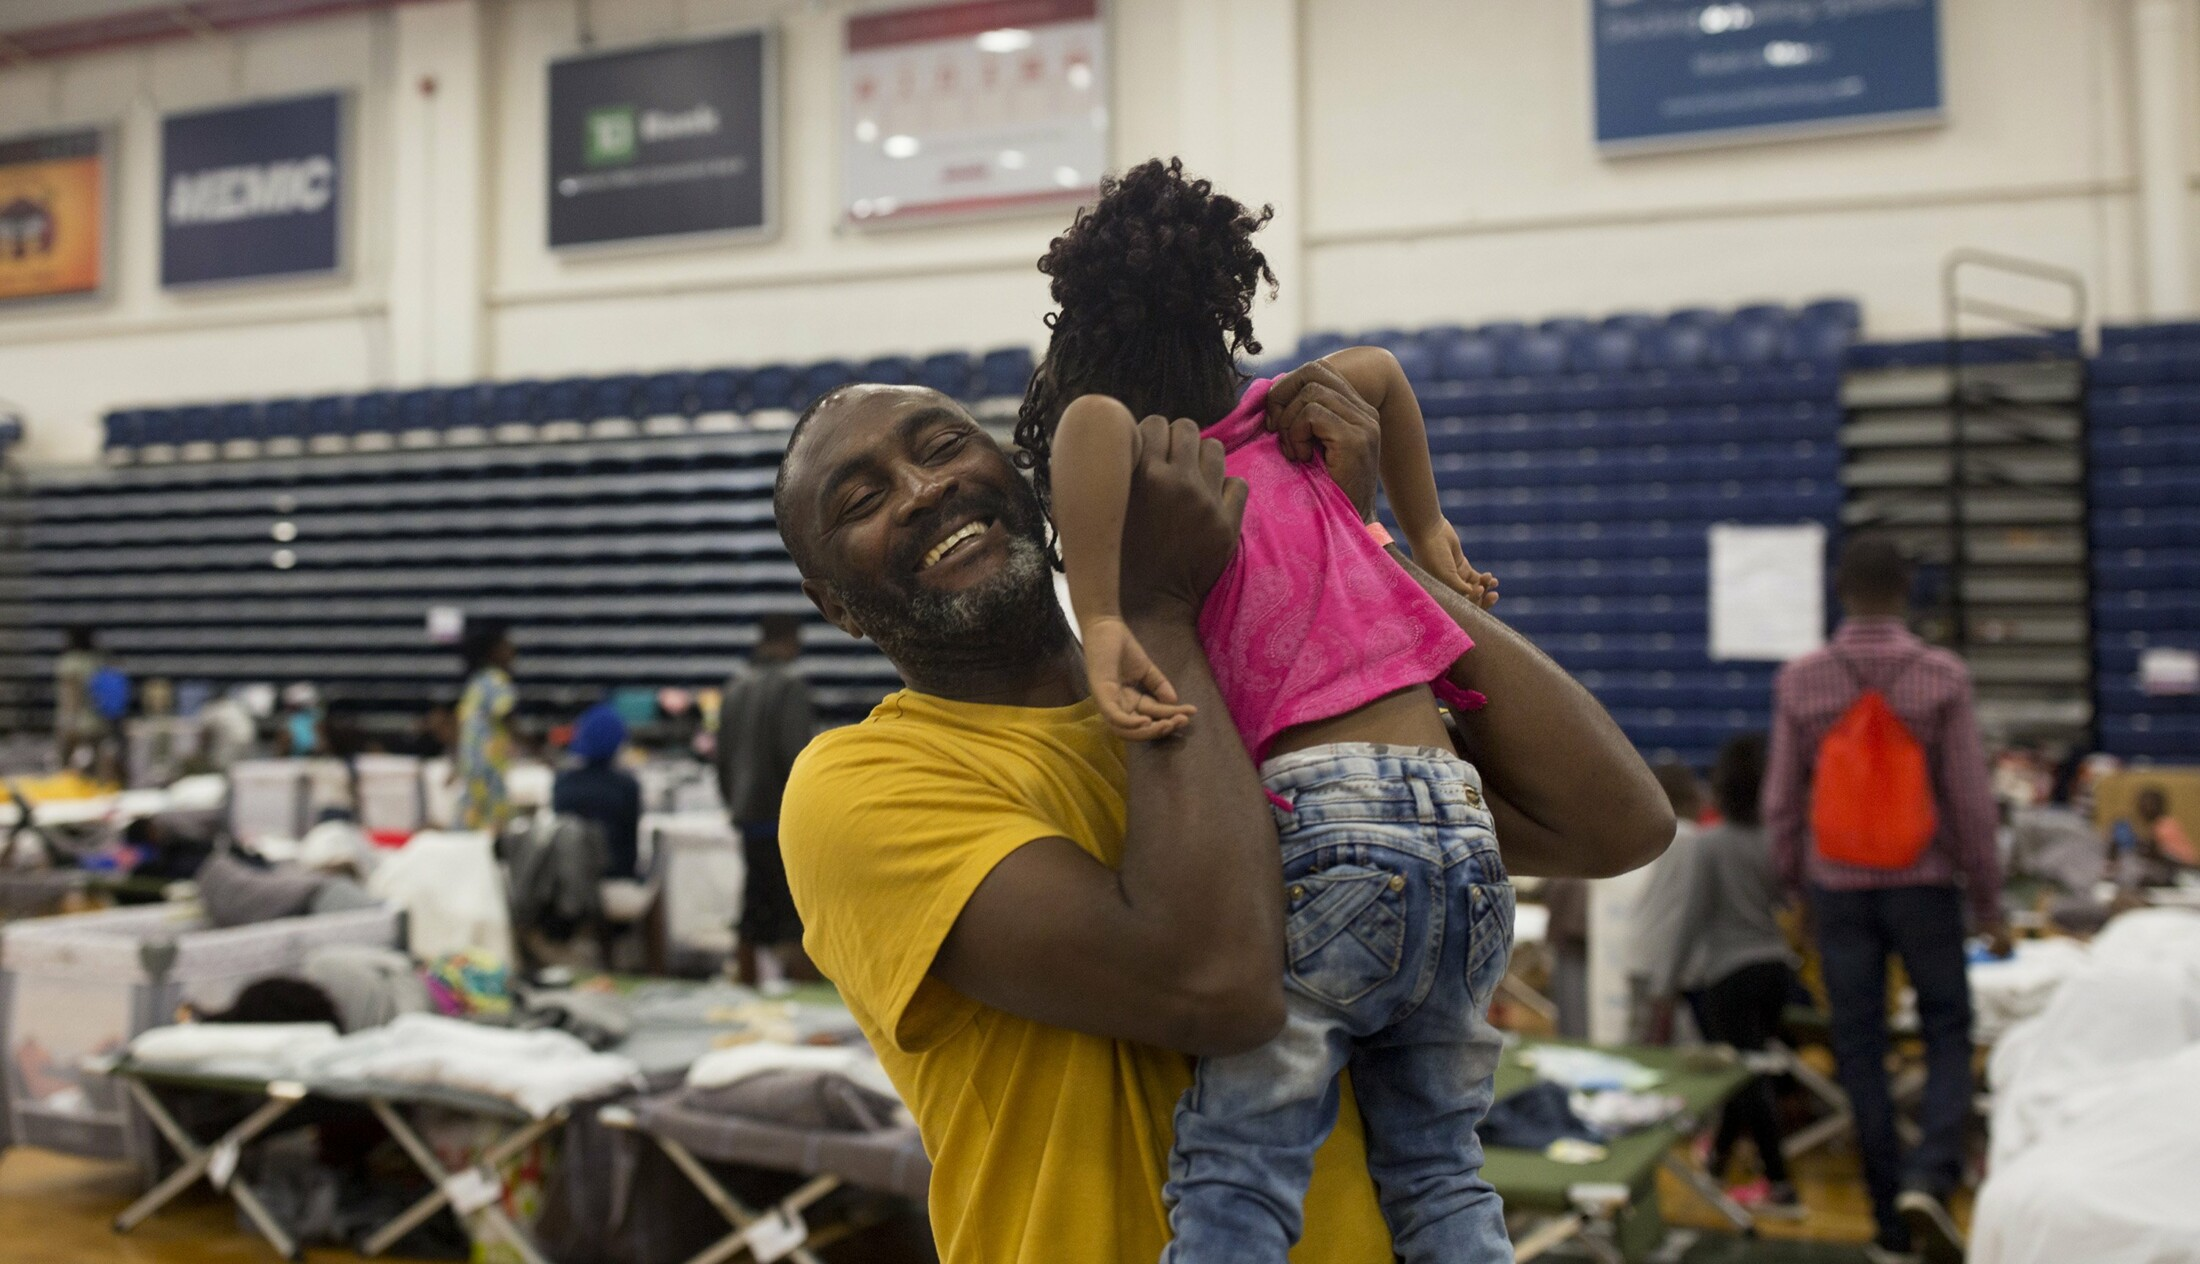 Our View: Federal immigration response sends very confused message - CentralMaine.com